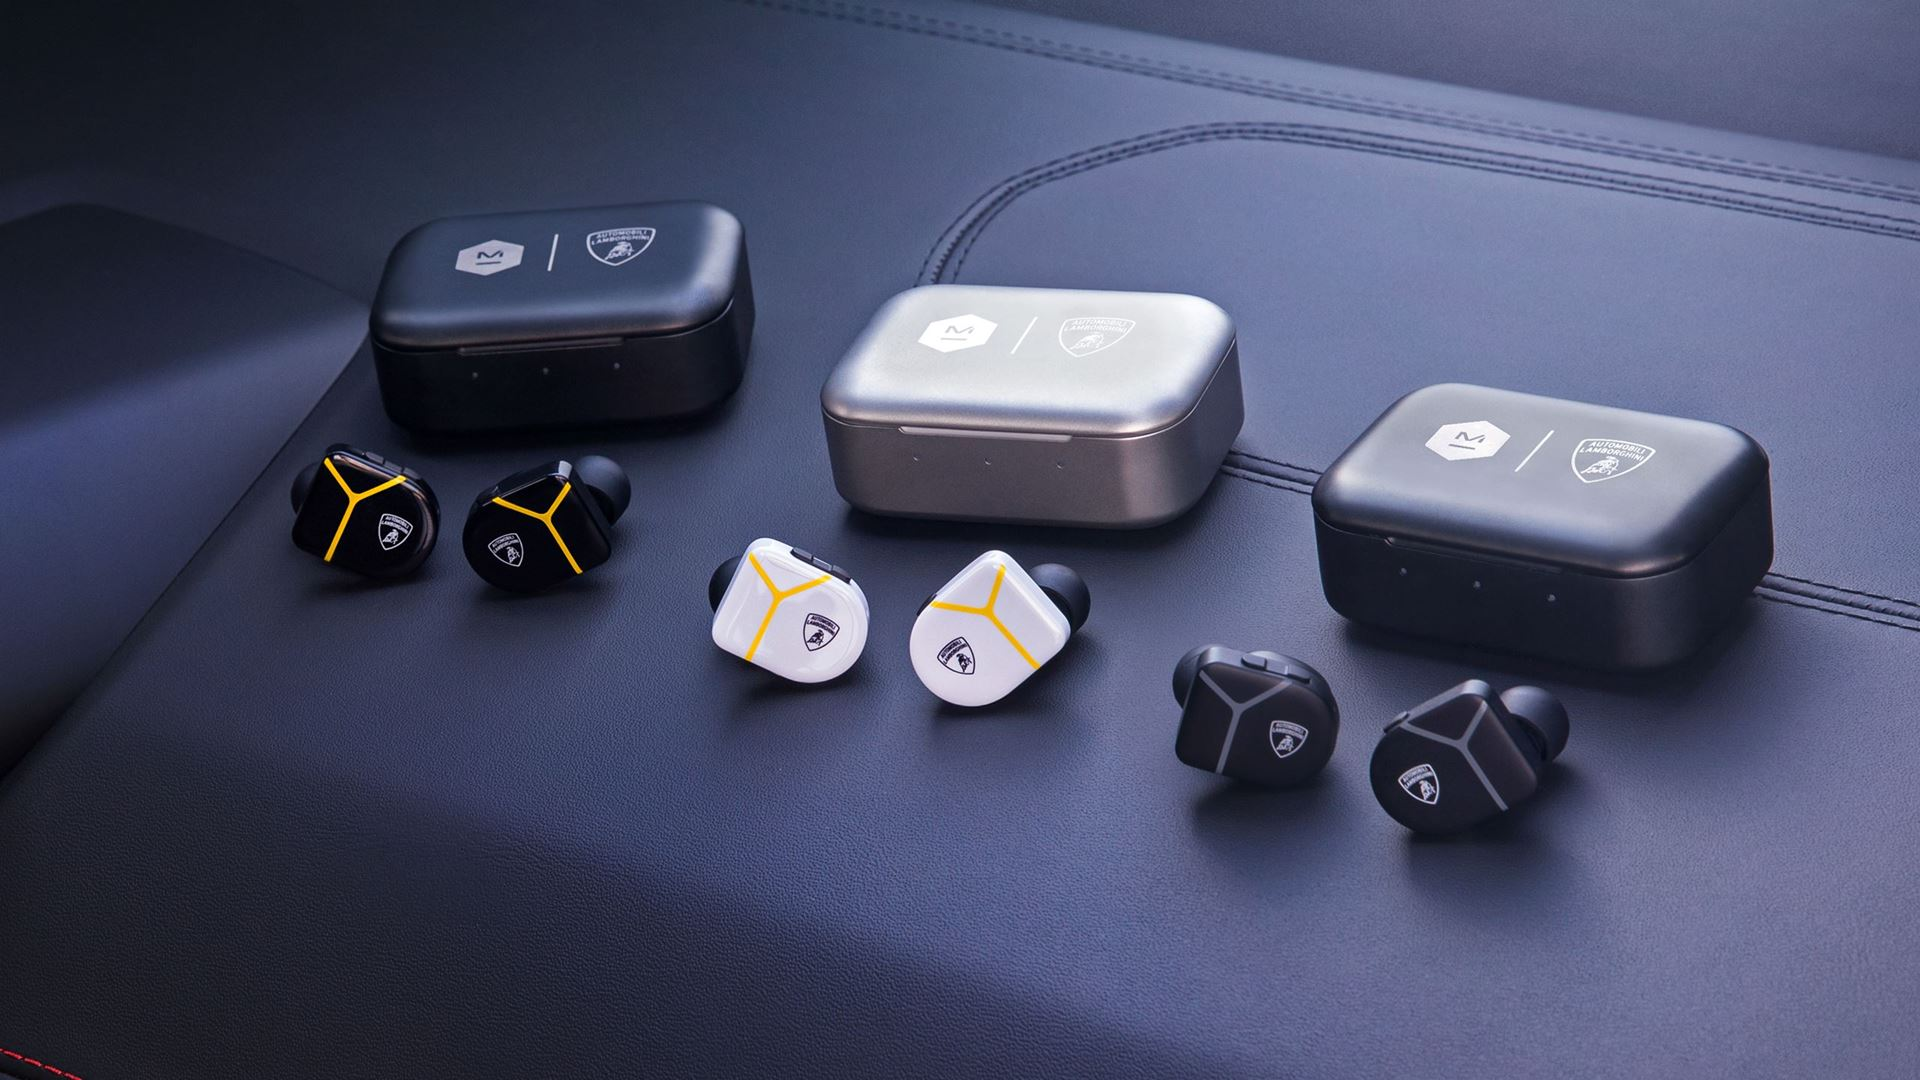 Automobili Lamborghini partners with Master & Dynamic on new headphones and earphones collection - Image 3